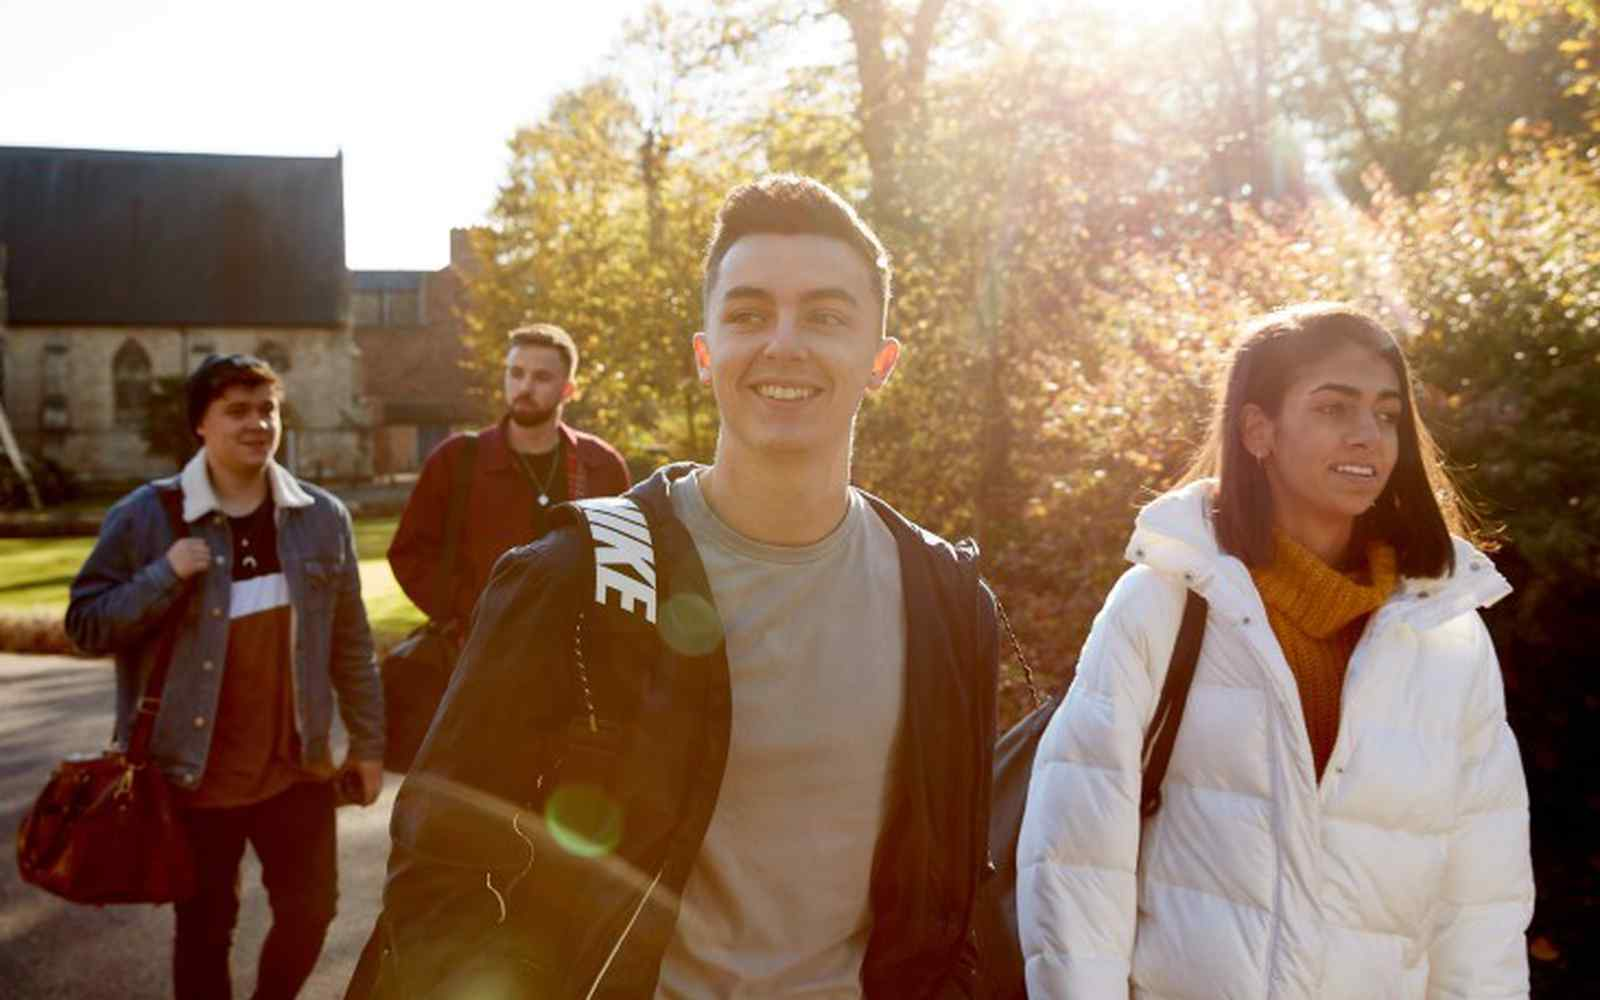 A group of students smiling outside campus